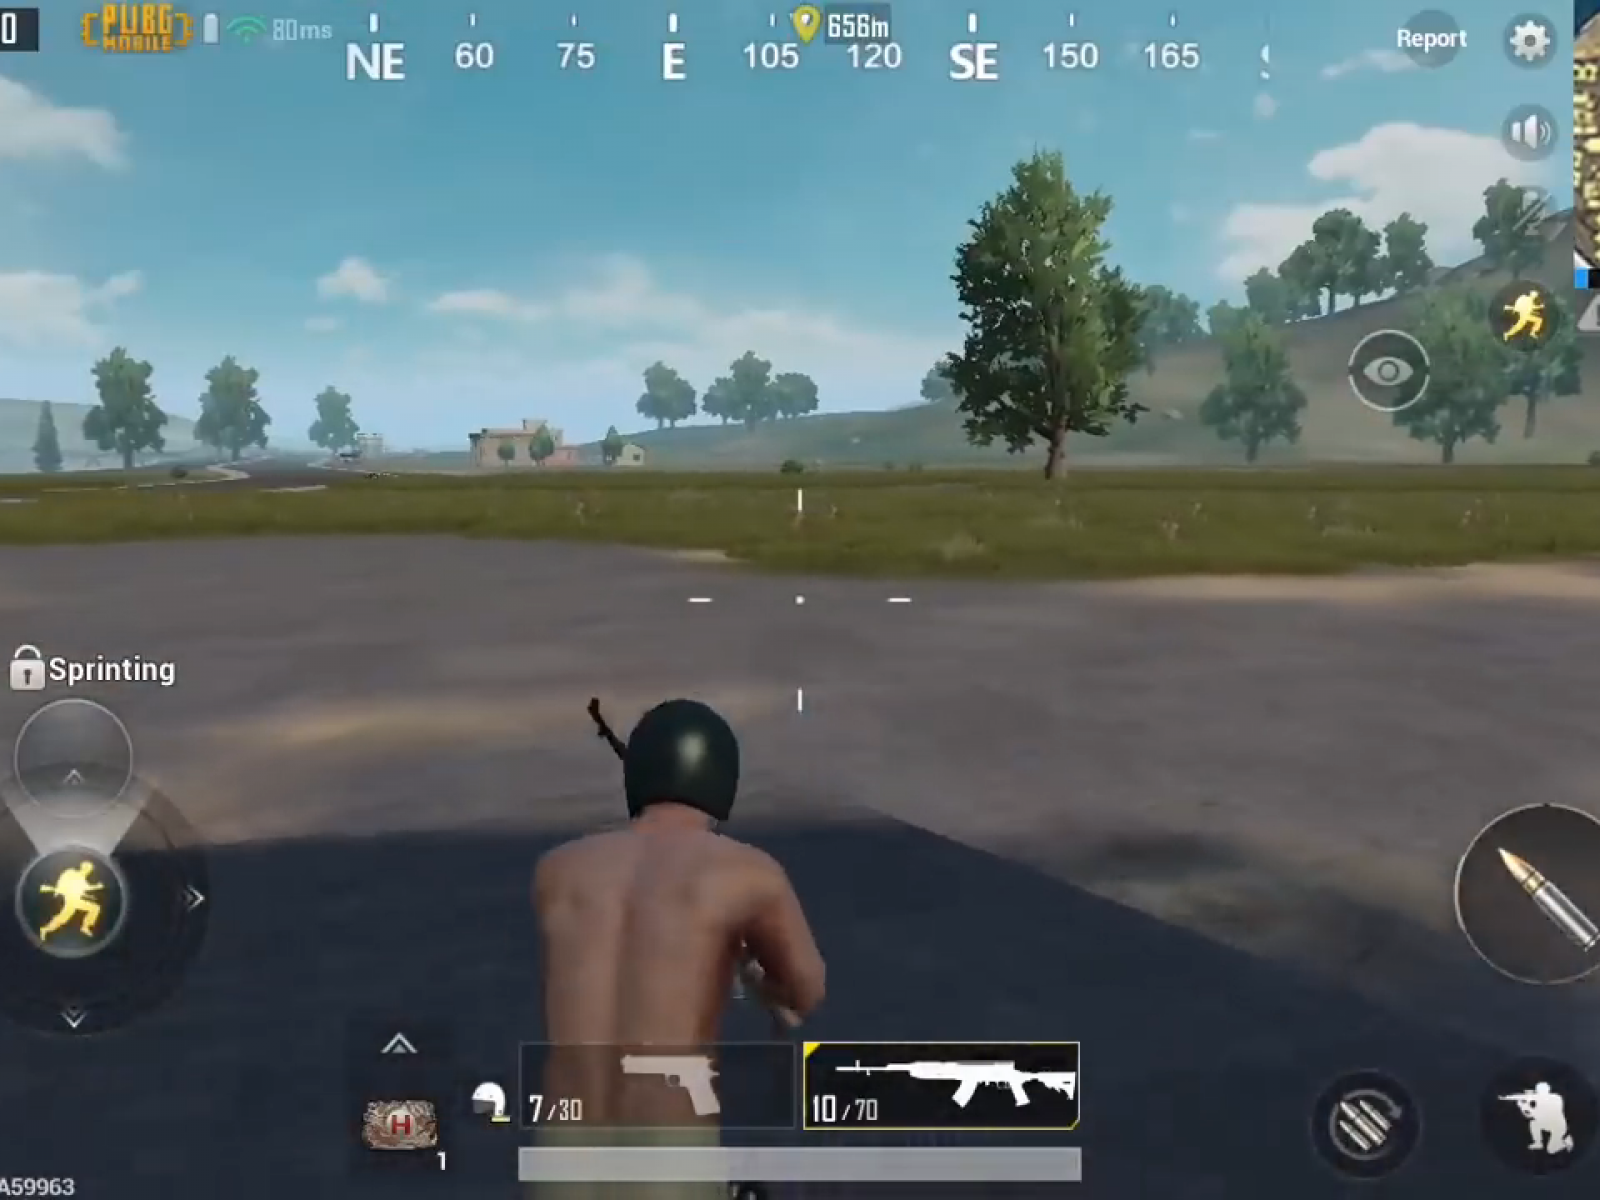 PUBG Mobile' Guide: How to Get Clothes, Name Change & Use Voice Chat